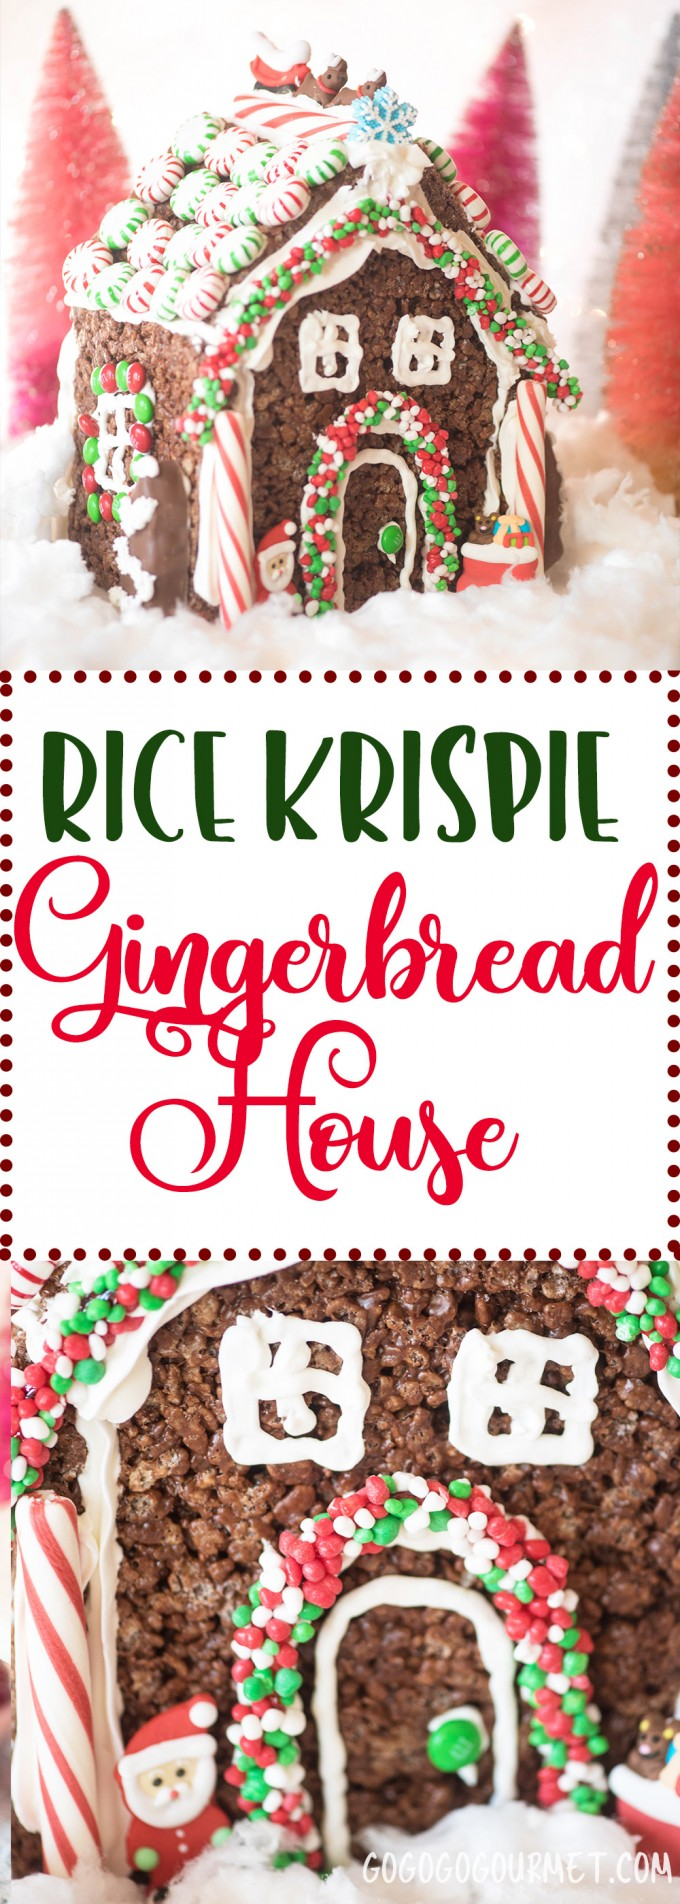 Maybe the easiest idea ever for building a gingerbread house from scratch! No bake, easy recipe and virtually no fuss- get decorating with the kids sooner! The perfect Rice Krispie Treats for Christmas.